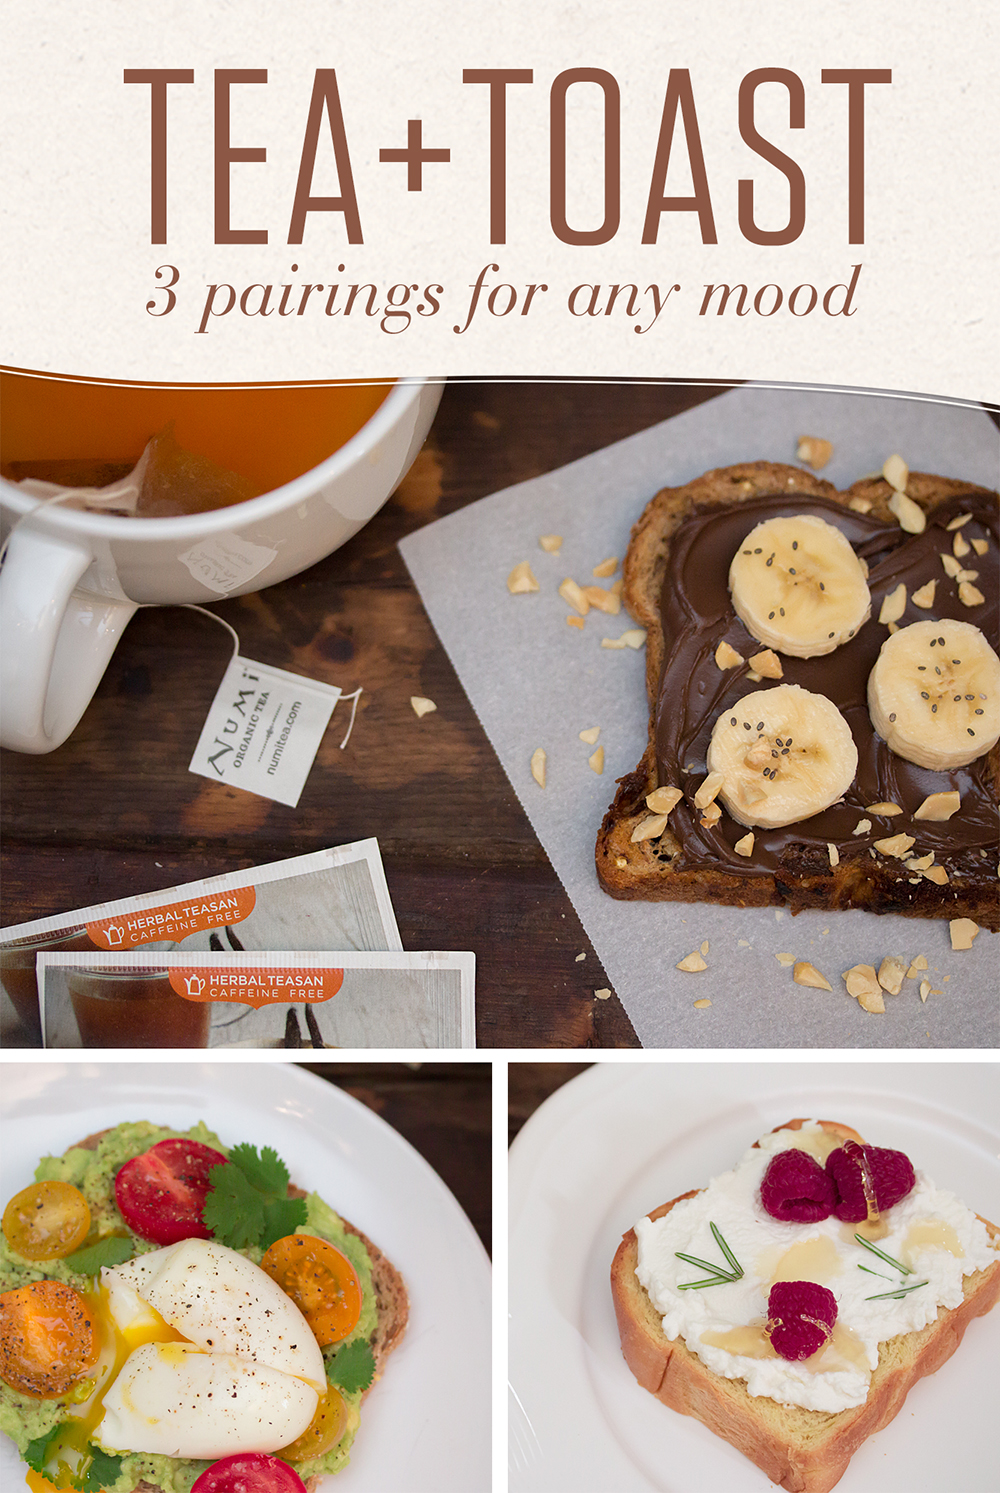 No matter what you're craving, one of these toast and tea pairings will elevate your food experience and make for a brighter day.